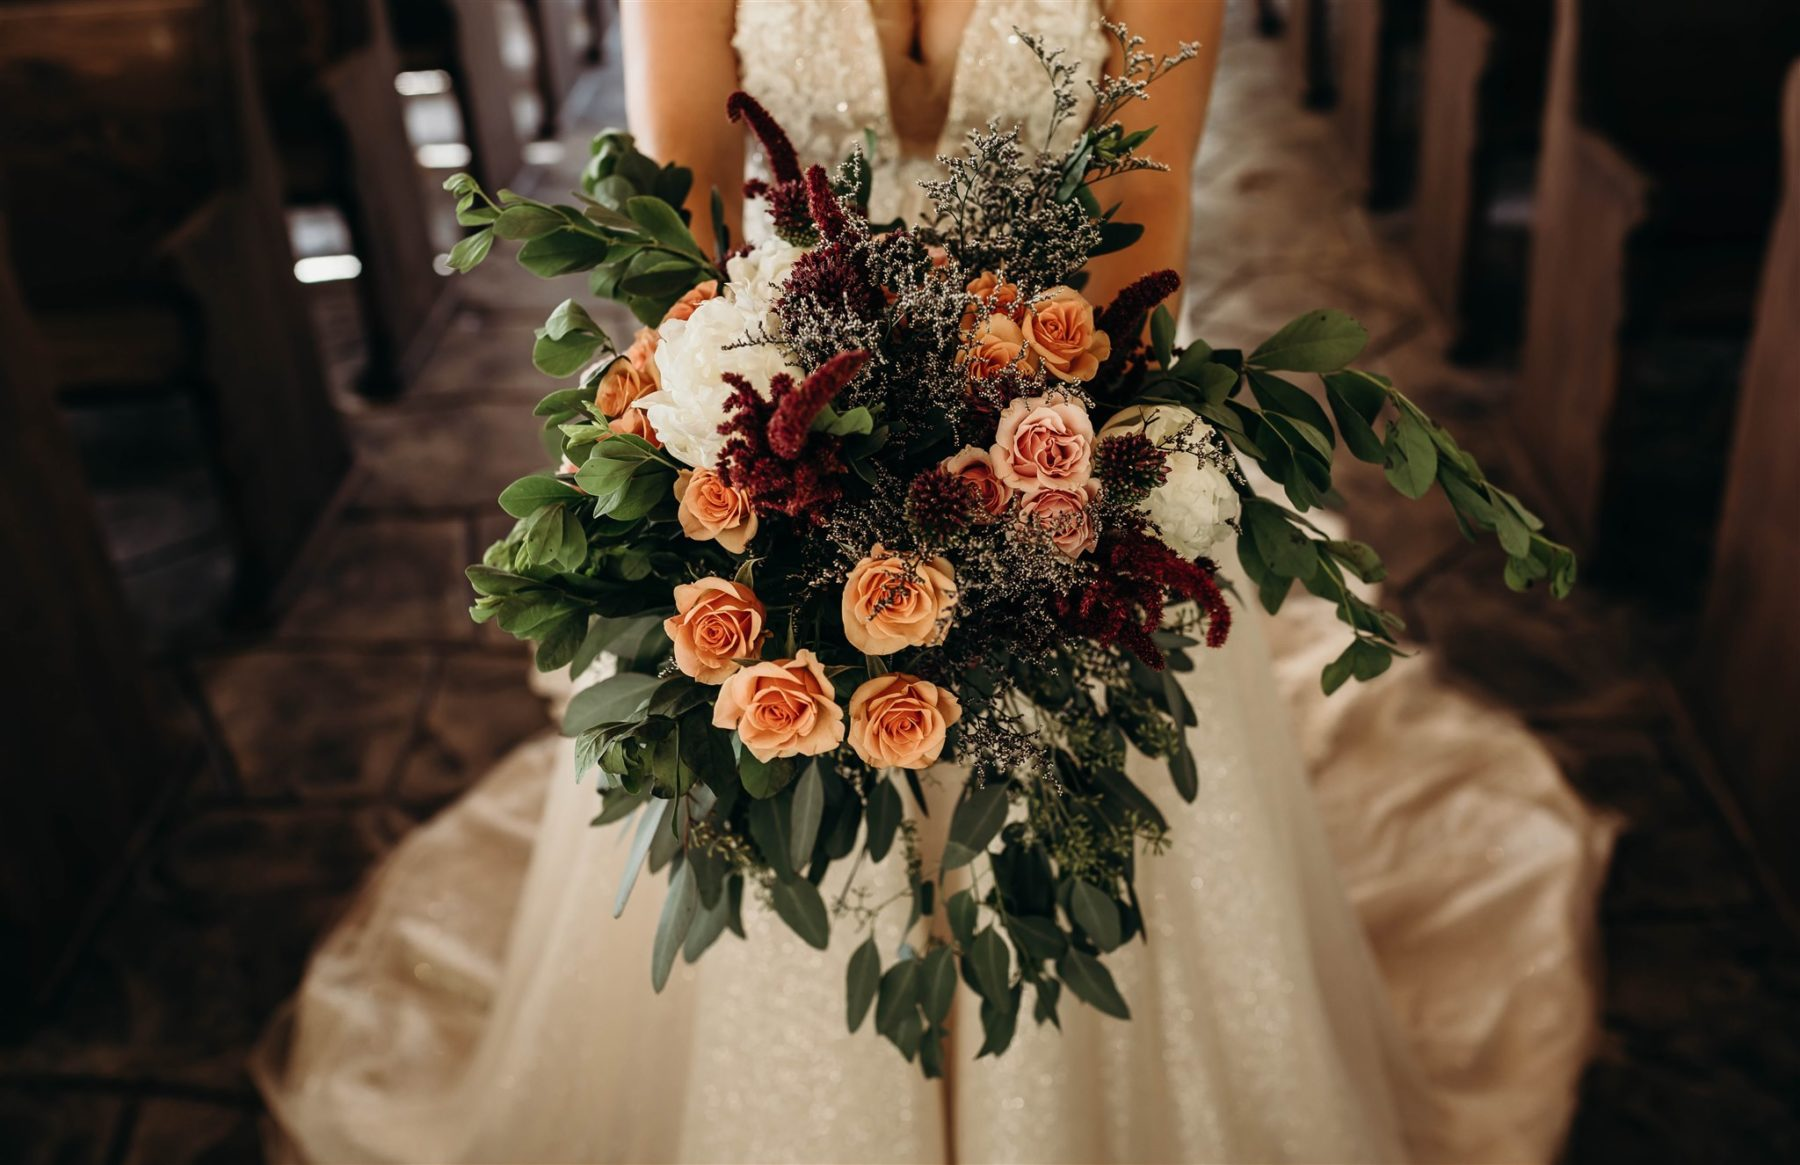 How to Add Color to Your Wedding with Flowers from Rachael Ann's Event Design featured on Nashville Bride Guide